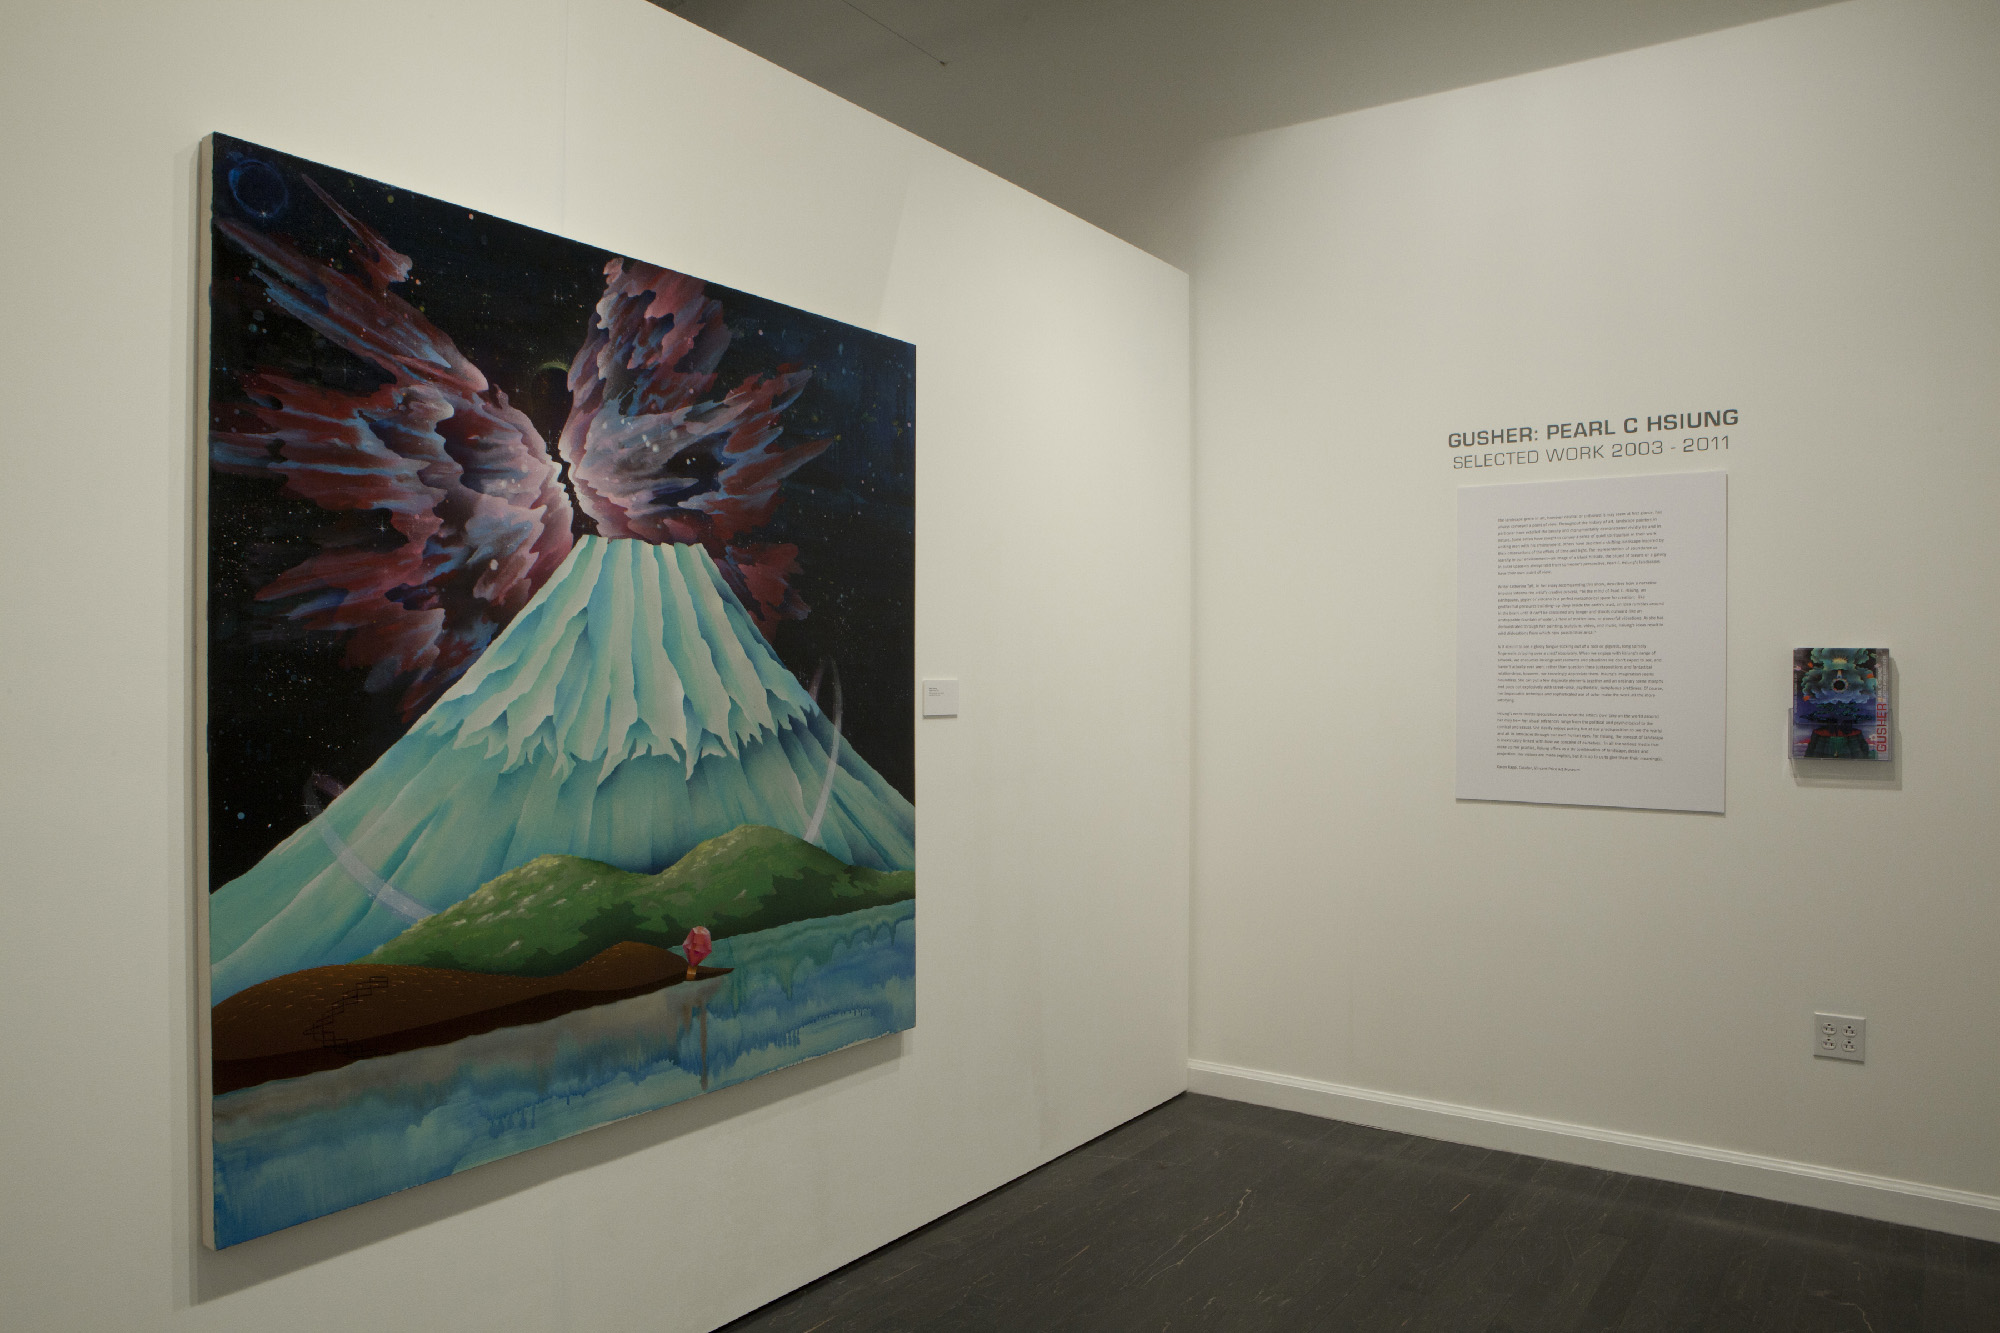 Installation images from Gusher;Pearl C. Hsiung Selected Works 2003 - 2011